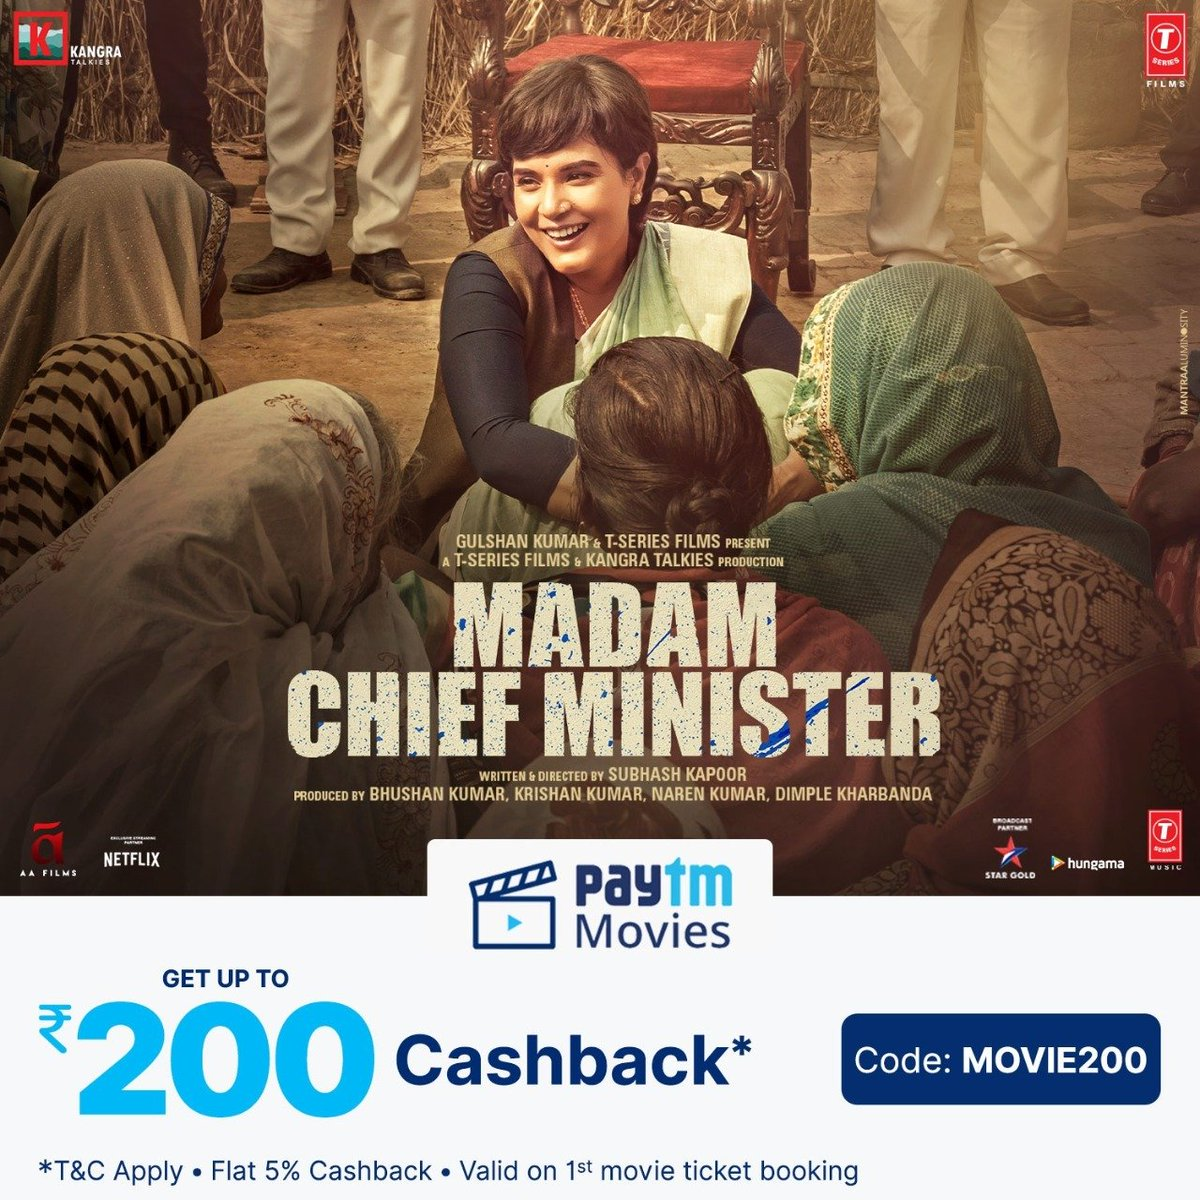 Watch the biggest showdown between a commoner and the largest political system. Get your tickets for #MadamChiefMinister.  Book your tickets now:   @RichaChadha @saurabhshukla_s #ManavKaul #BhushanKumar #KrishanKumar @subkapoor @KangraTalkies